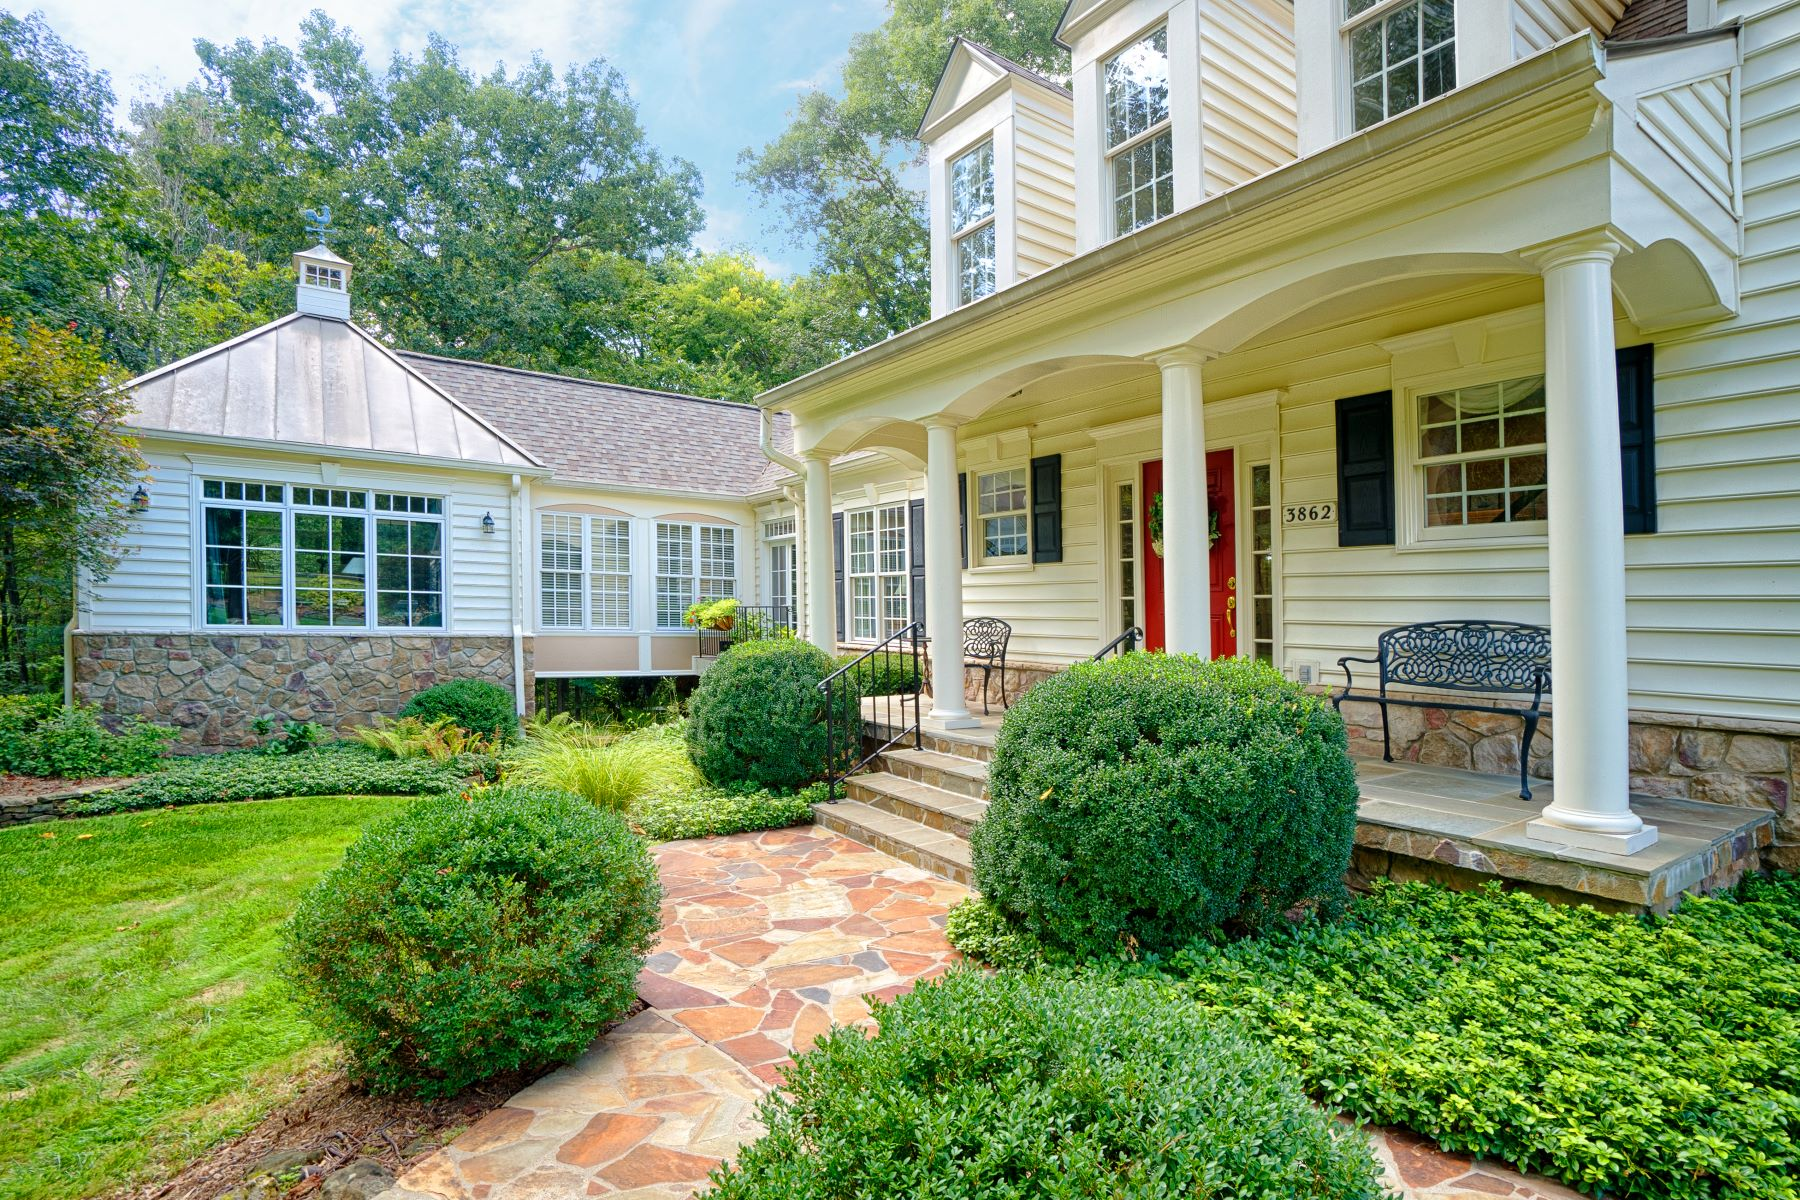 Single Family Home for Sale at Fox Walk 3862 Clifton Manor Place, Haymarket, Virginia, 20169 United States